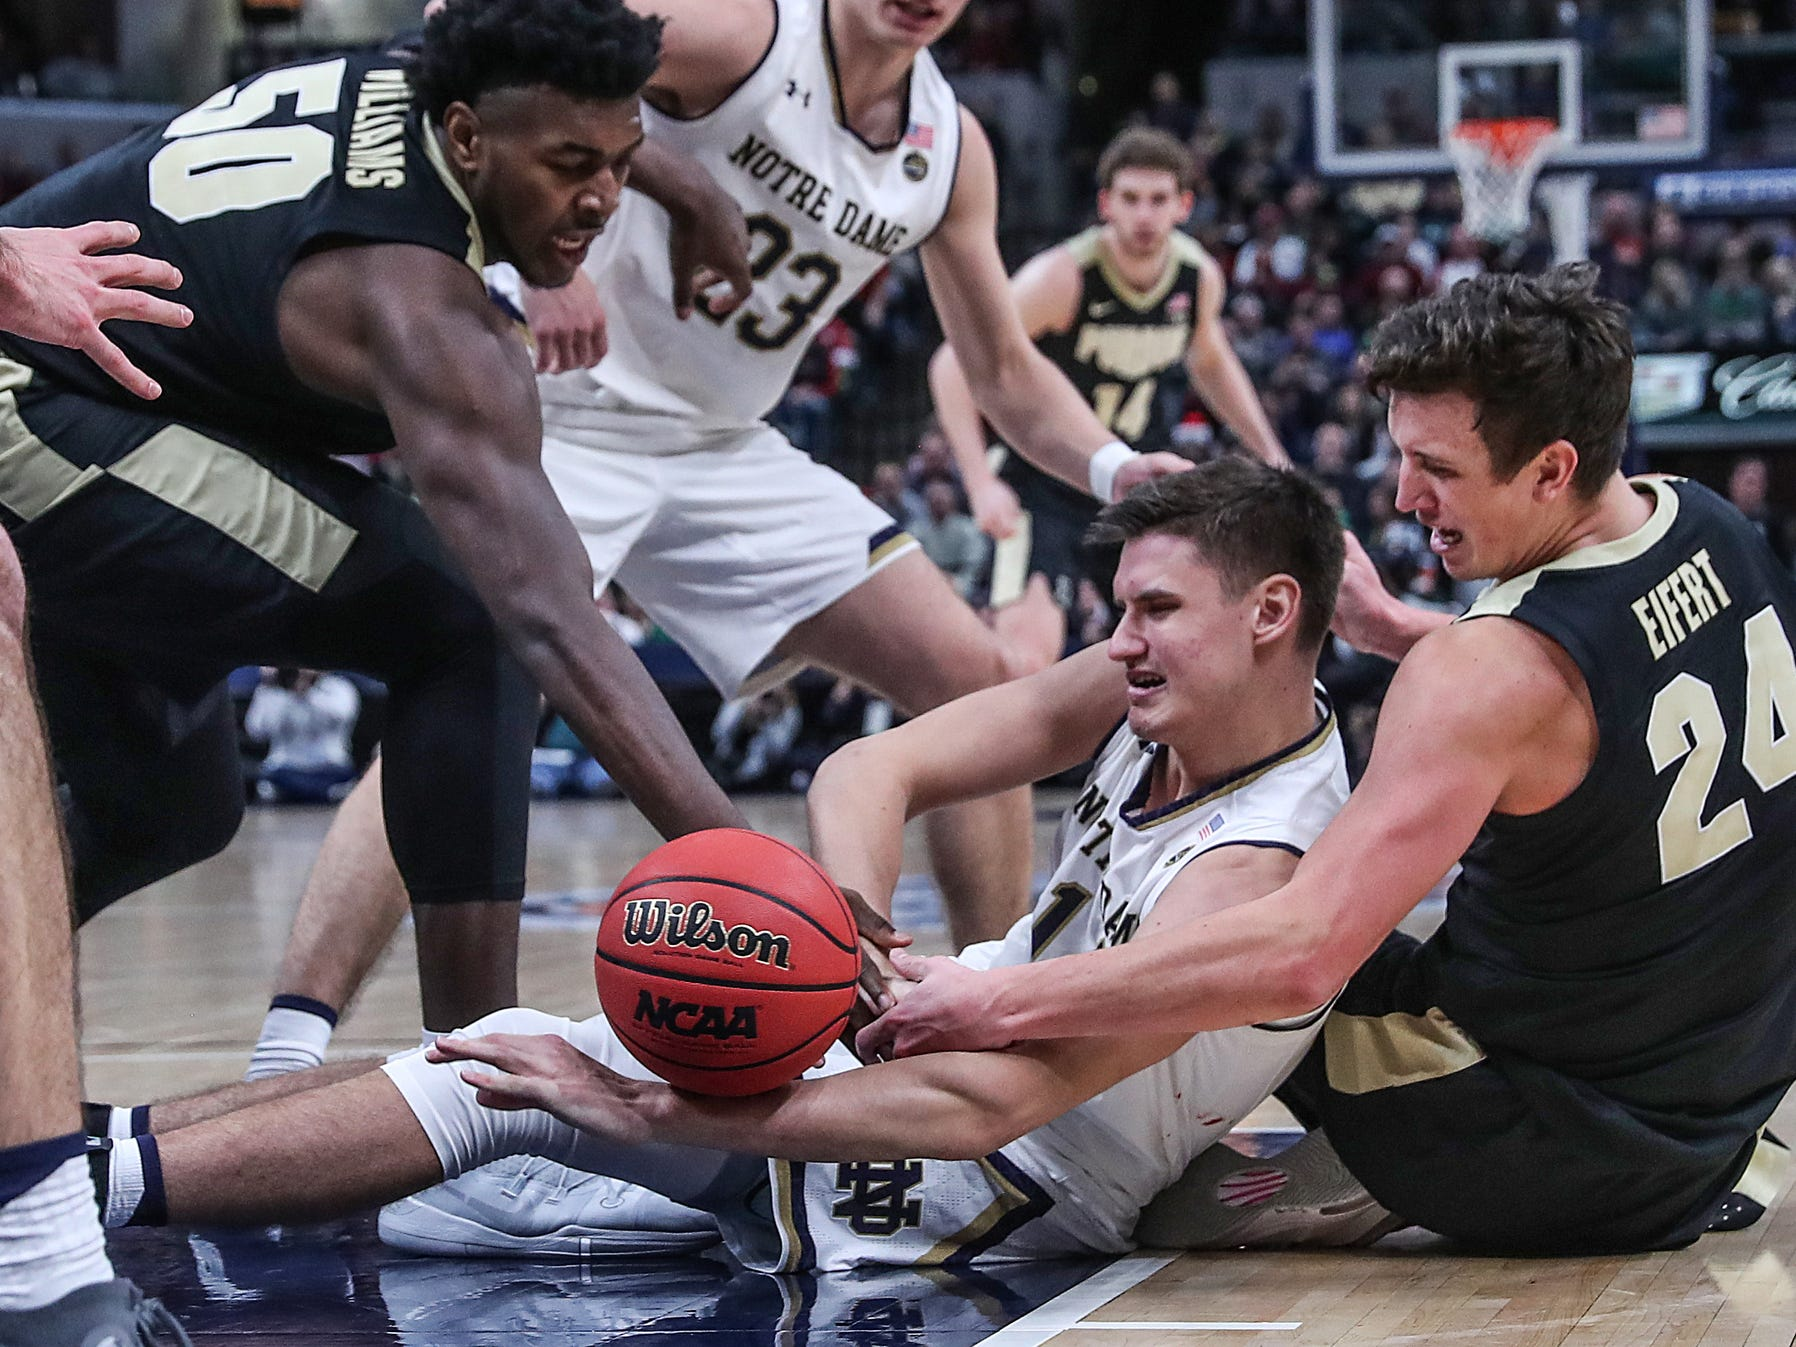 Players grapple over a jumpball in the second half of the Crossroads Classic game between Purdue and Notre Dame at Bankers Life Fieldhouse in Indiananpolis, Saturday, Dec. 15, 2018. Notre Dame won, 88-80.